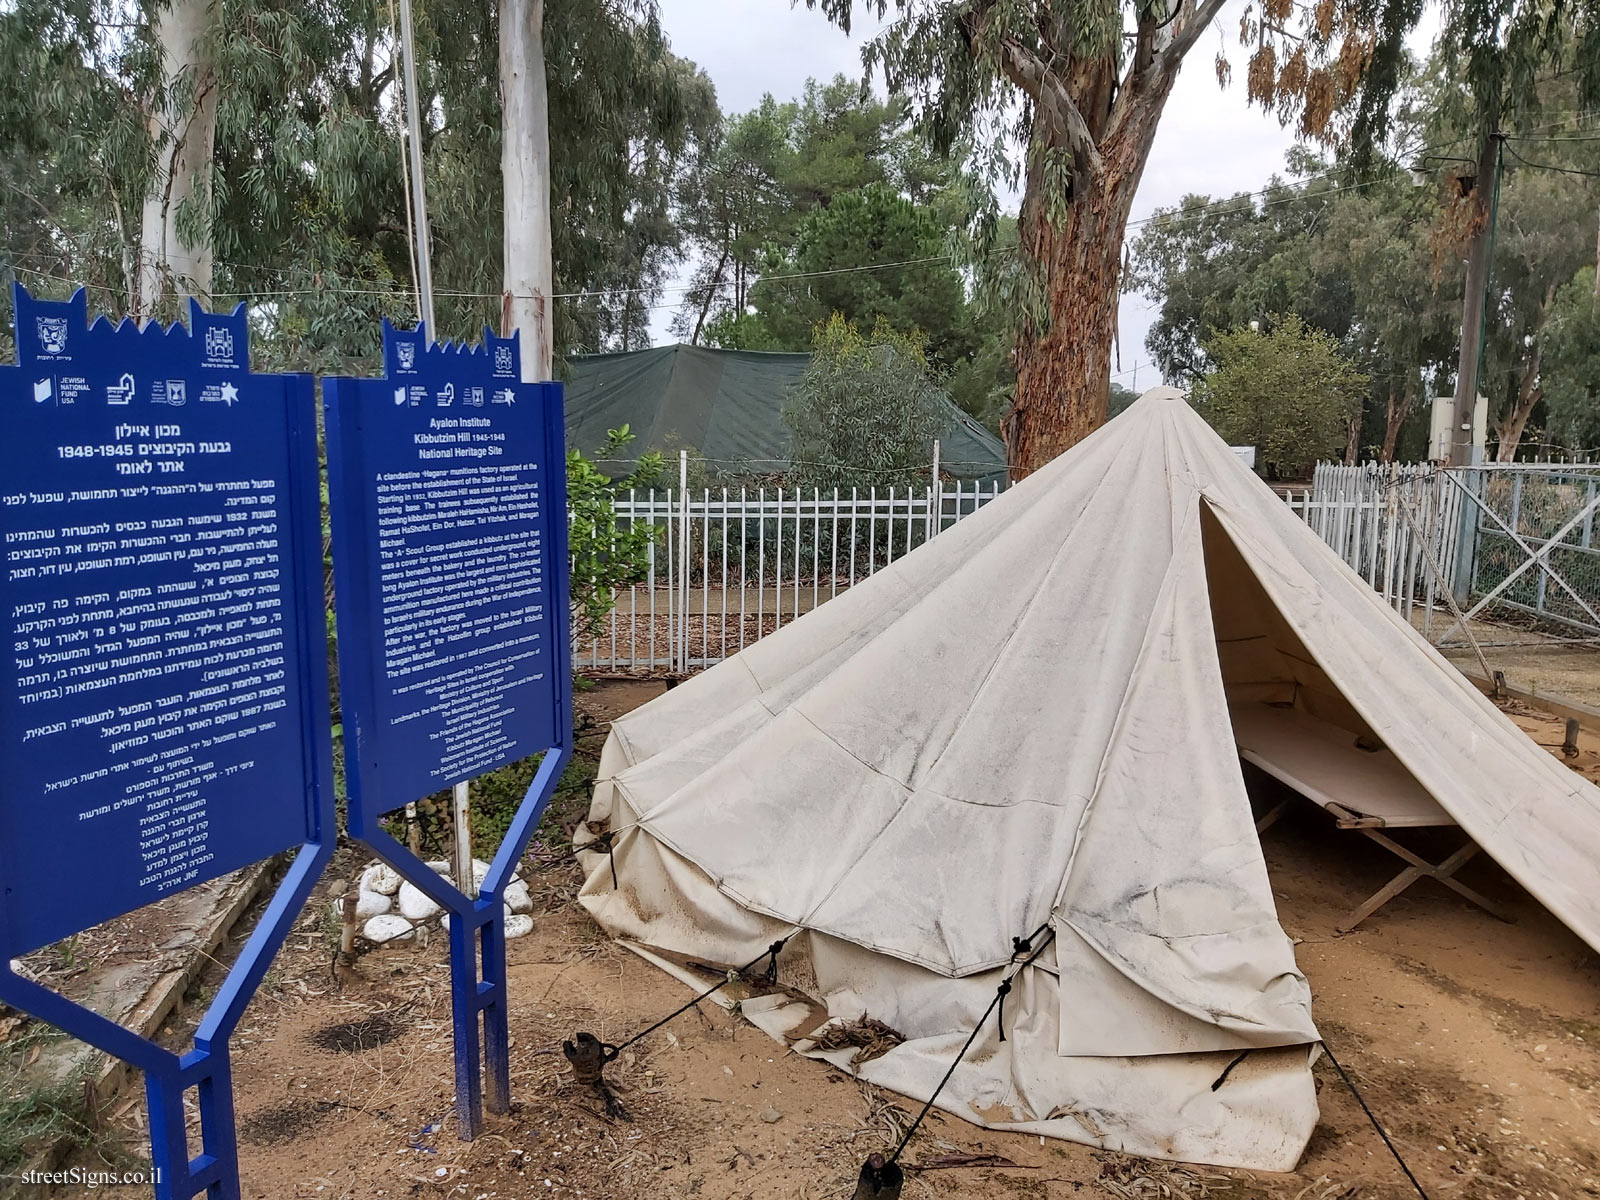 Rehovot - Heritage Sites in Israel - Ayalon Institute - David Fikes St 1, Rehovot, Israel